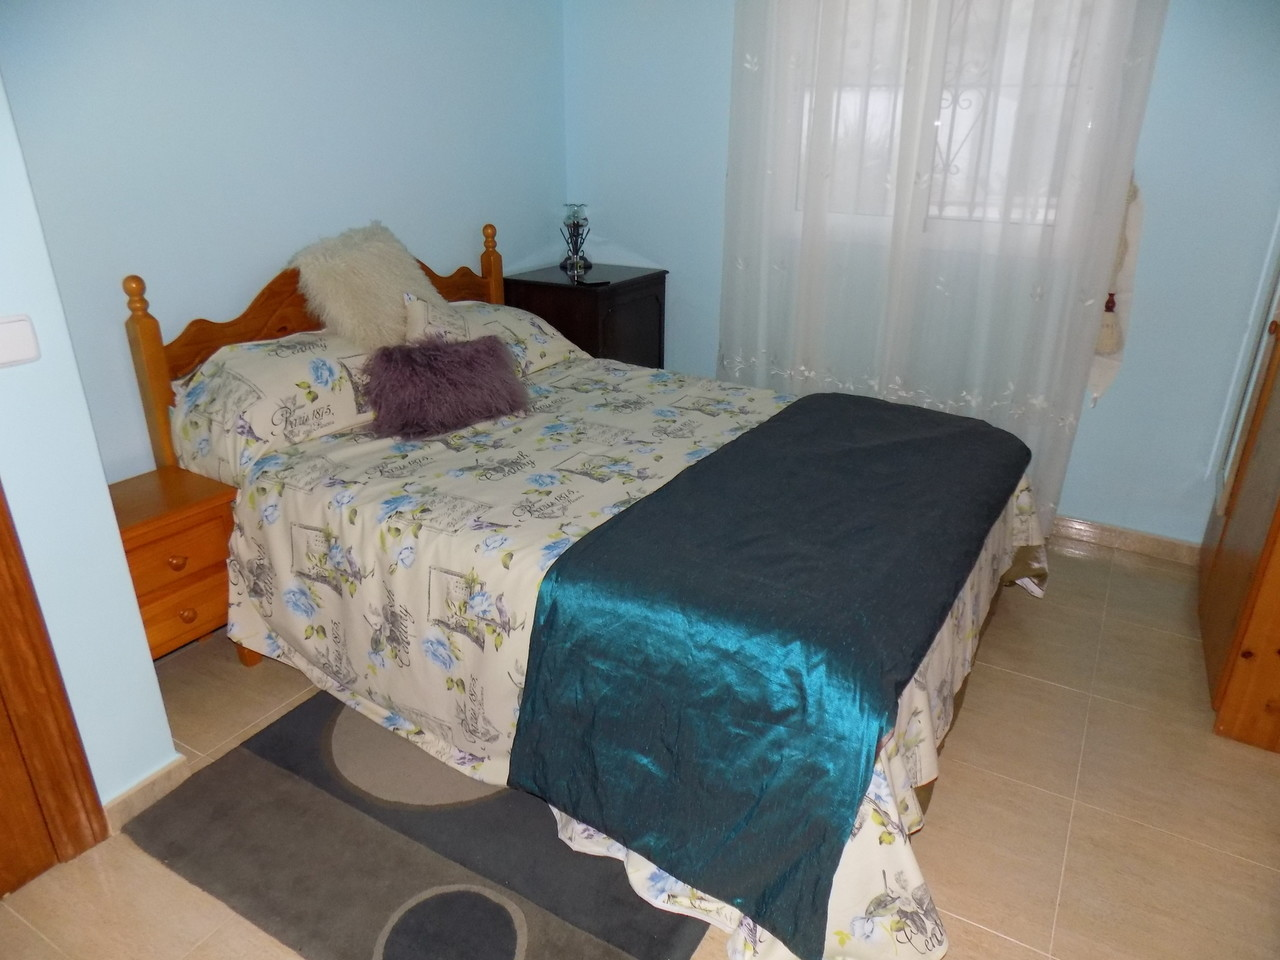 Propery For Sale in Huércal-Overa, Spain image 10